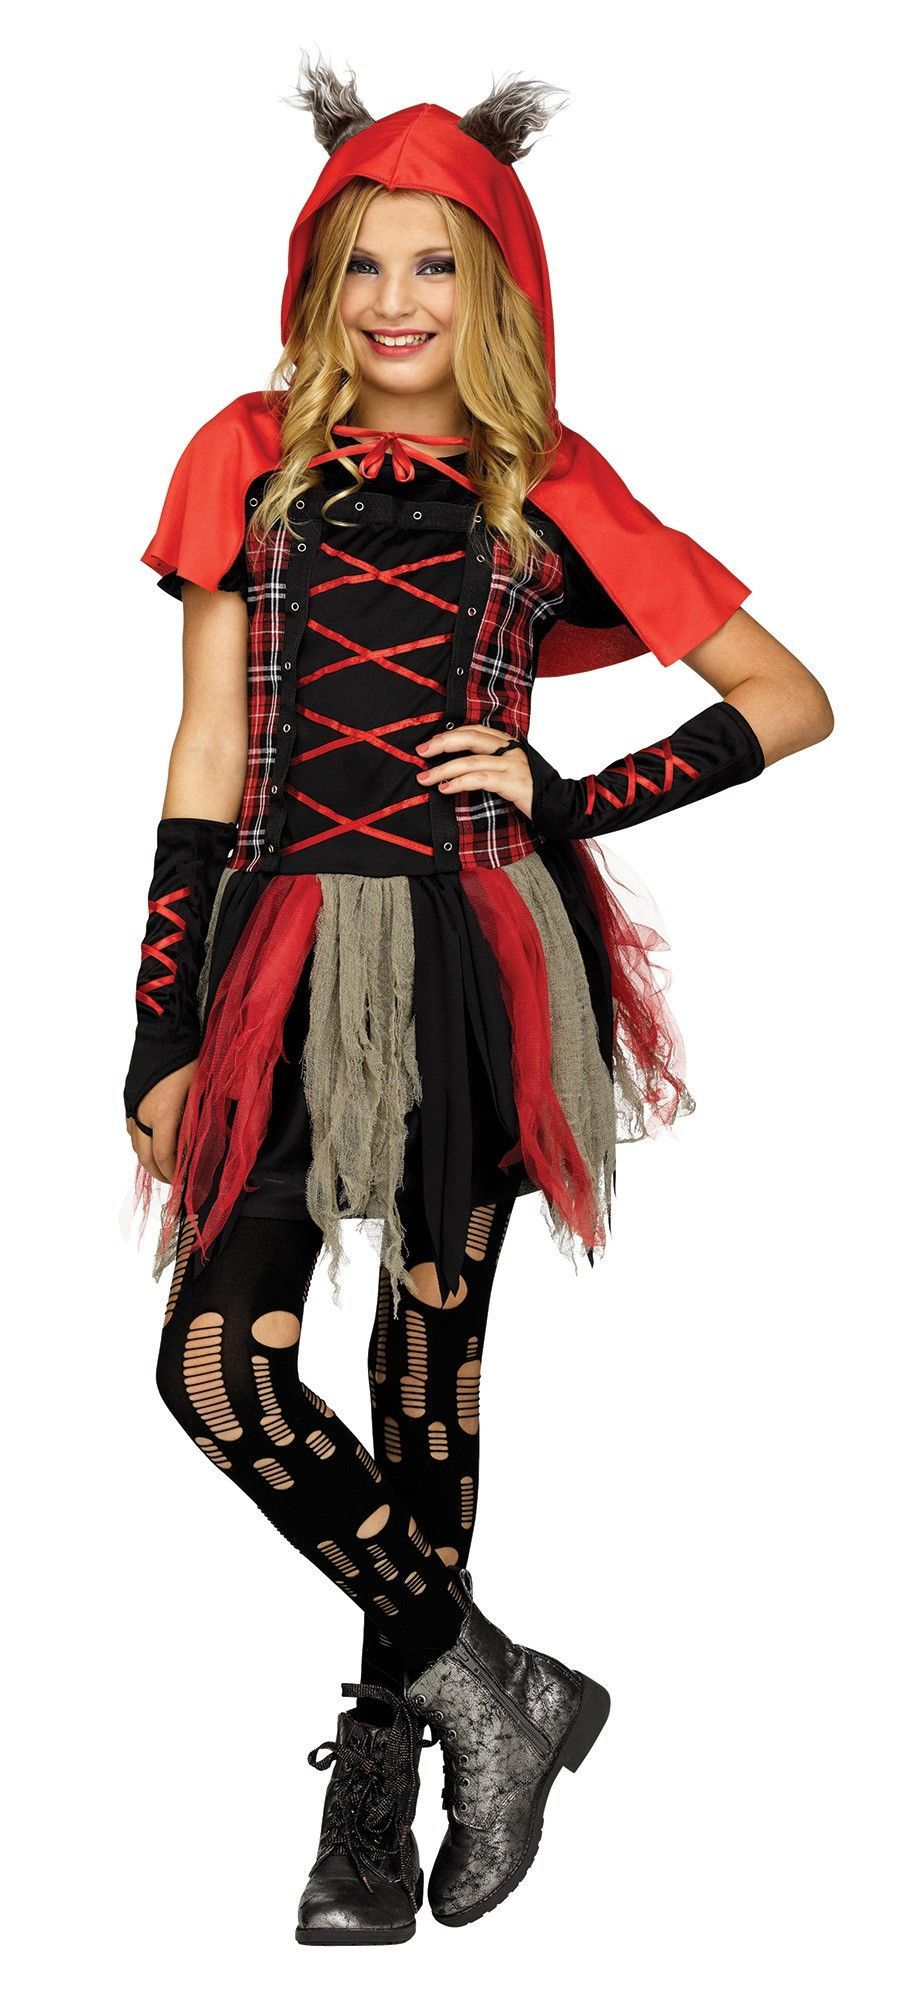 Little Red Wolf Girlu0027s Costume  sc 1 st  Pinterest & Little Red Wolf Girlu0027s Costume | Costumes Halloween superstore and ...